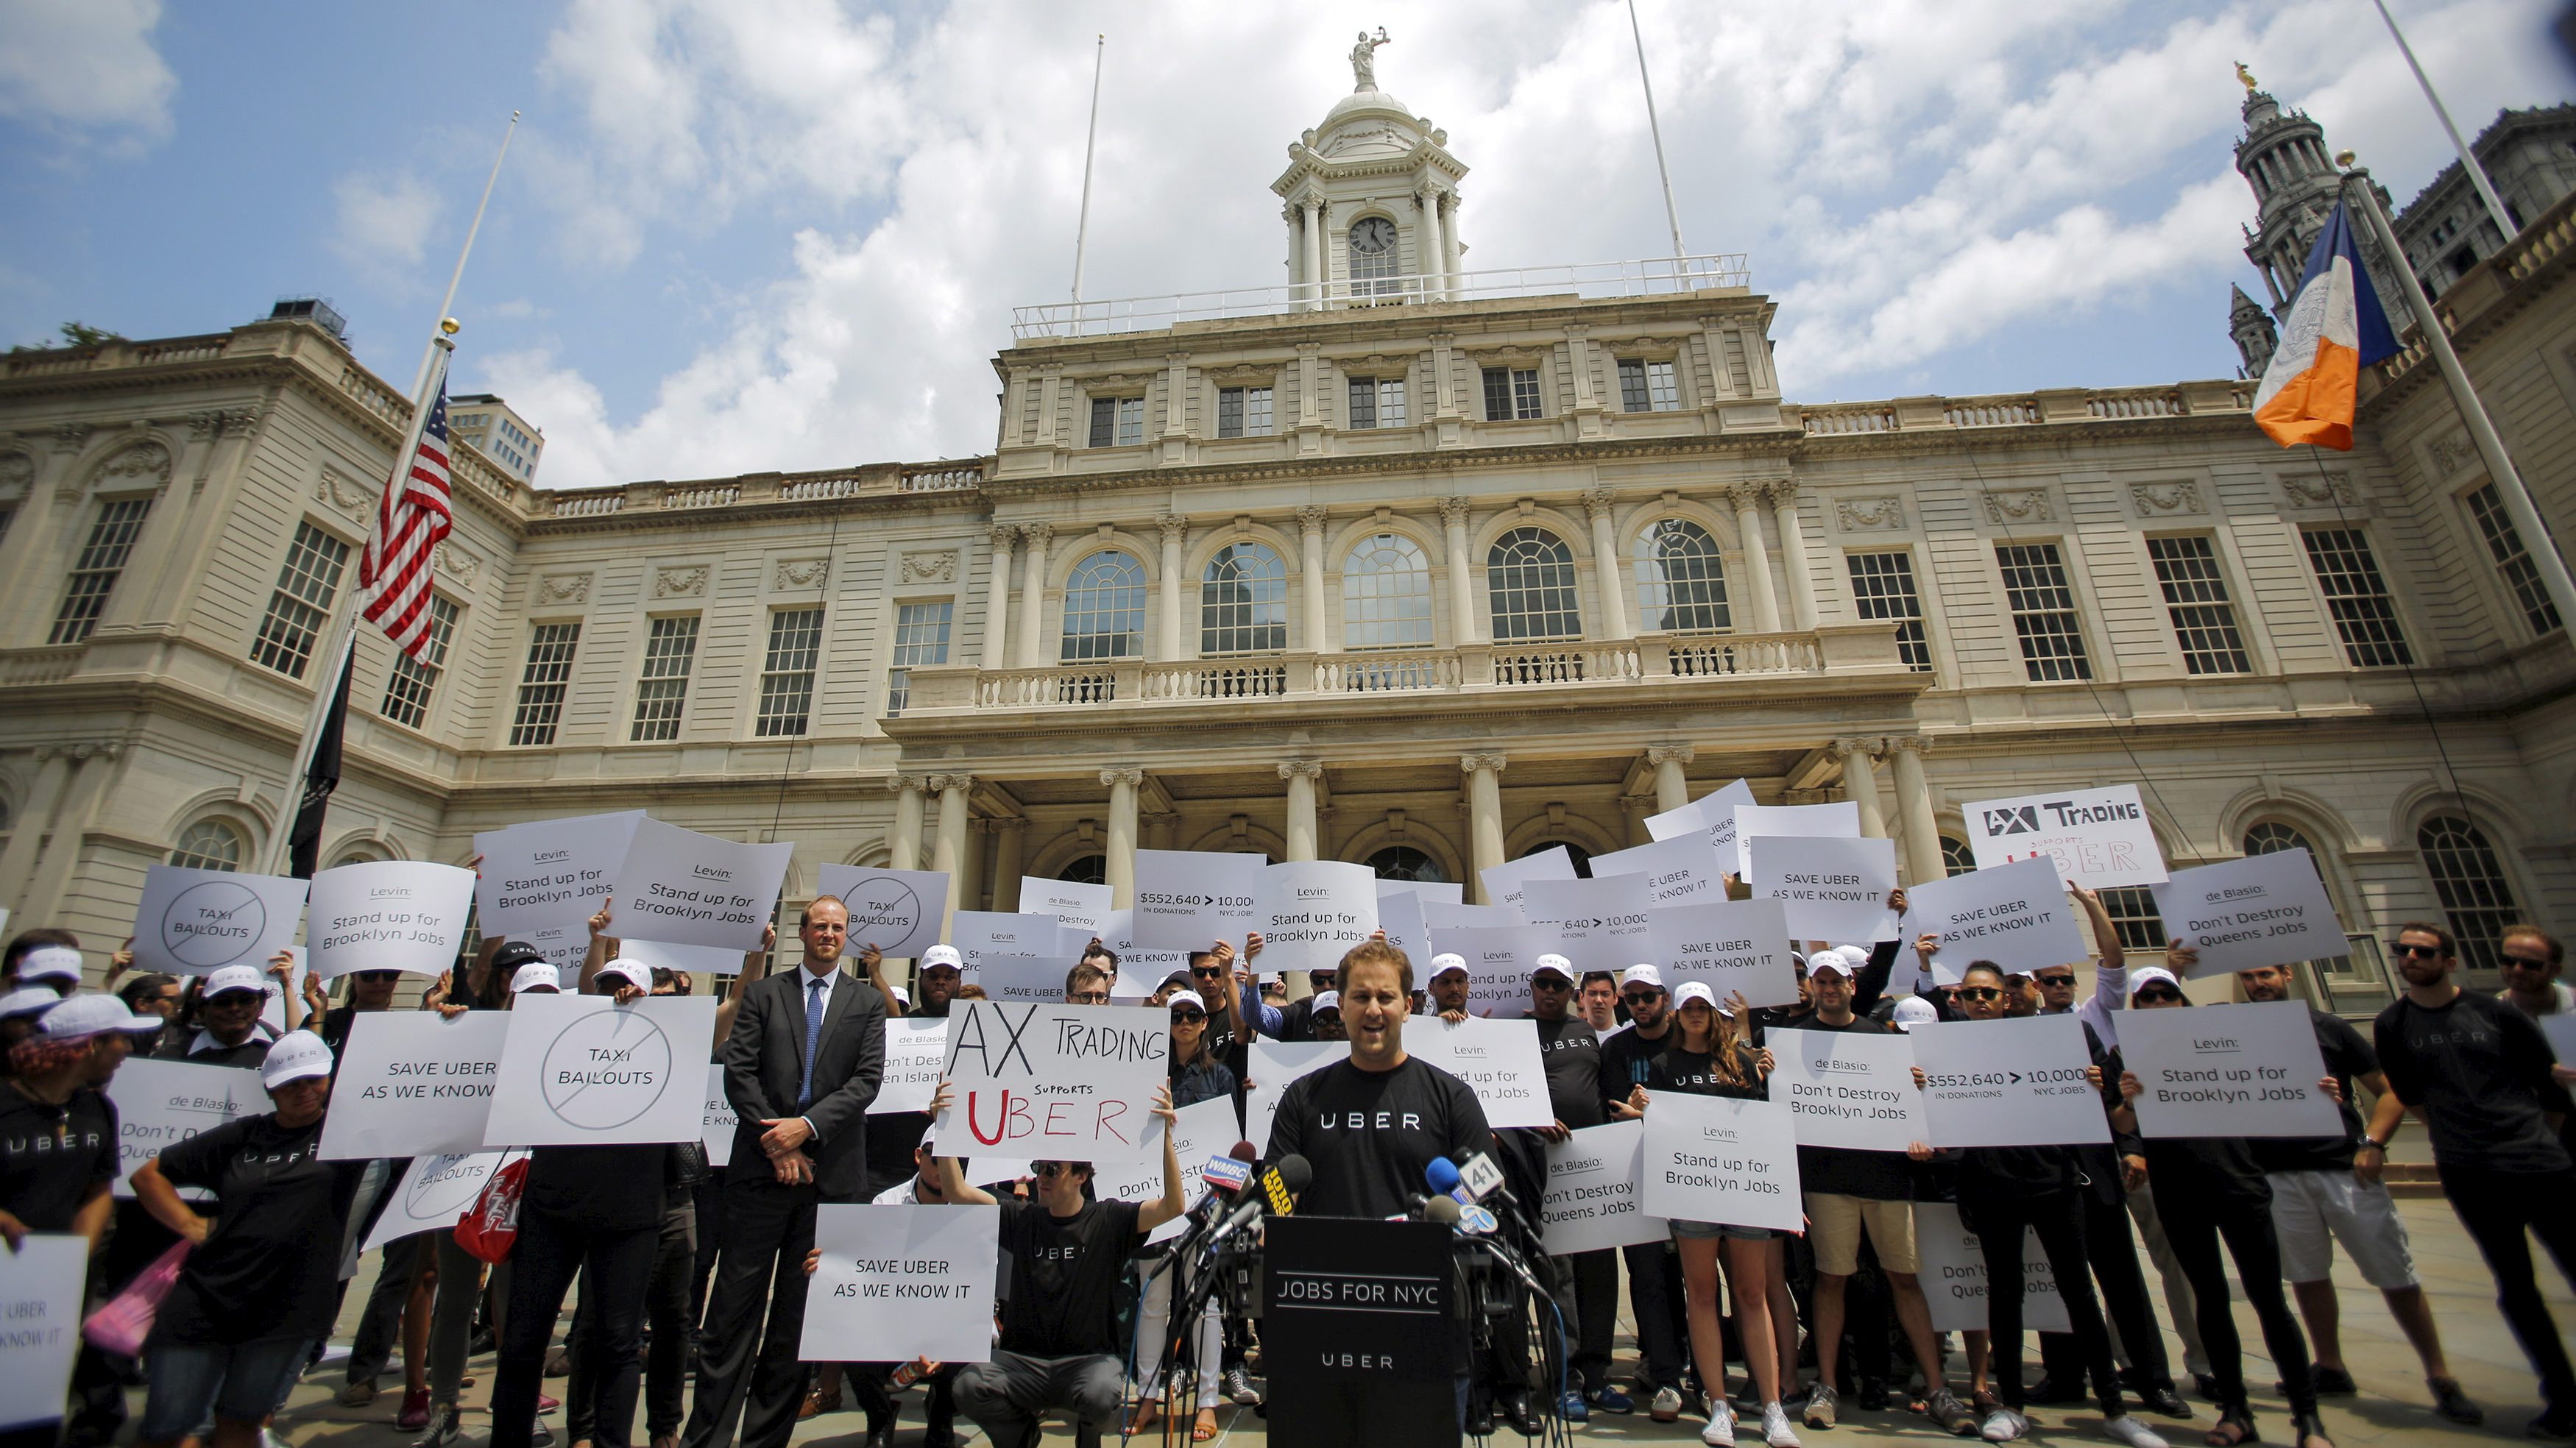 Uber riders and driver-partners take part in a rally on steps of New York City Hall against proposed legislation limiting for-hire vehicles in New York June 30, 2015. REUTERS/Eduardo Munoz - RTX1IHAT